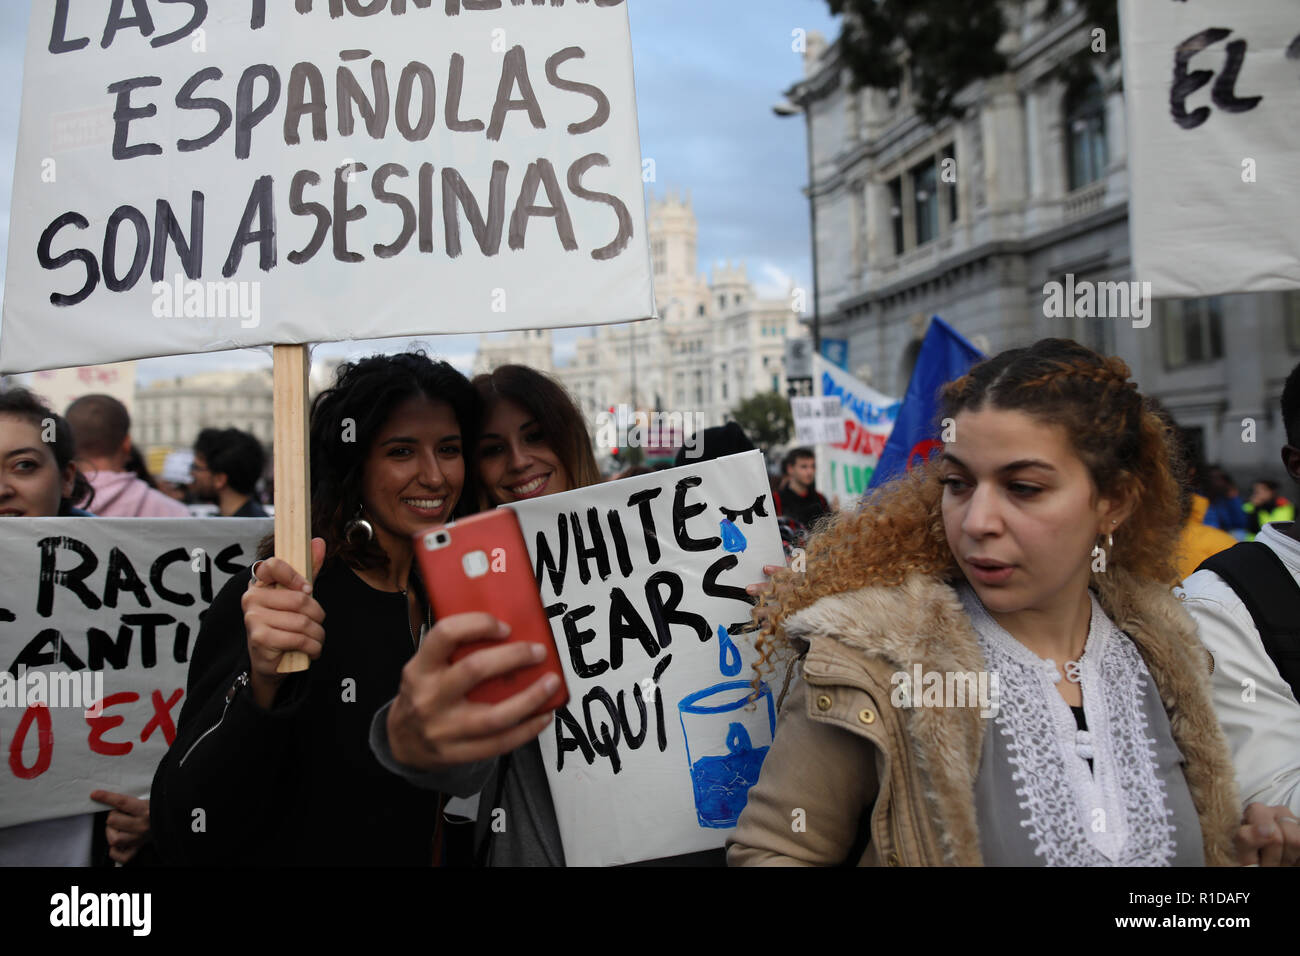 Madrid, Spain. 11th Nov, 2018. Several organizations have called a demonstration under the slogan ''Against institutional racism'' that roamed the streets of Madrid to demand the elimination of immigration centers (CIE) and denounce the Law of Foreigners and the persecution of the manteros, among other demands on Nov 11, 2018 in Madrid, Spain Credit: Jesus Hellin/ZUMA Wire/Alamy Live News - Stock Image